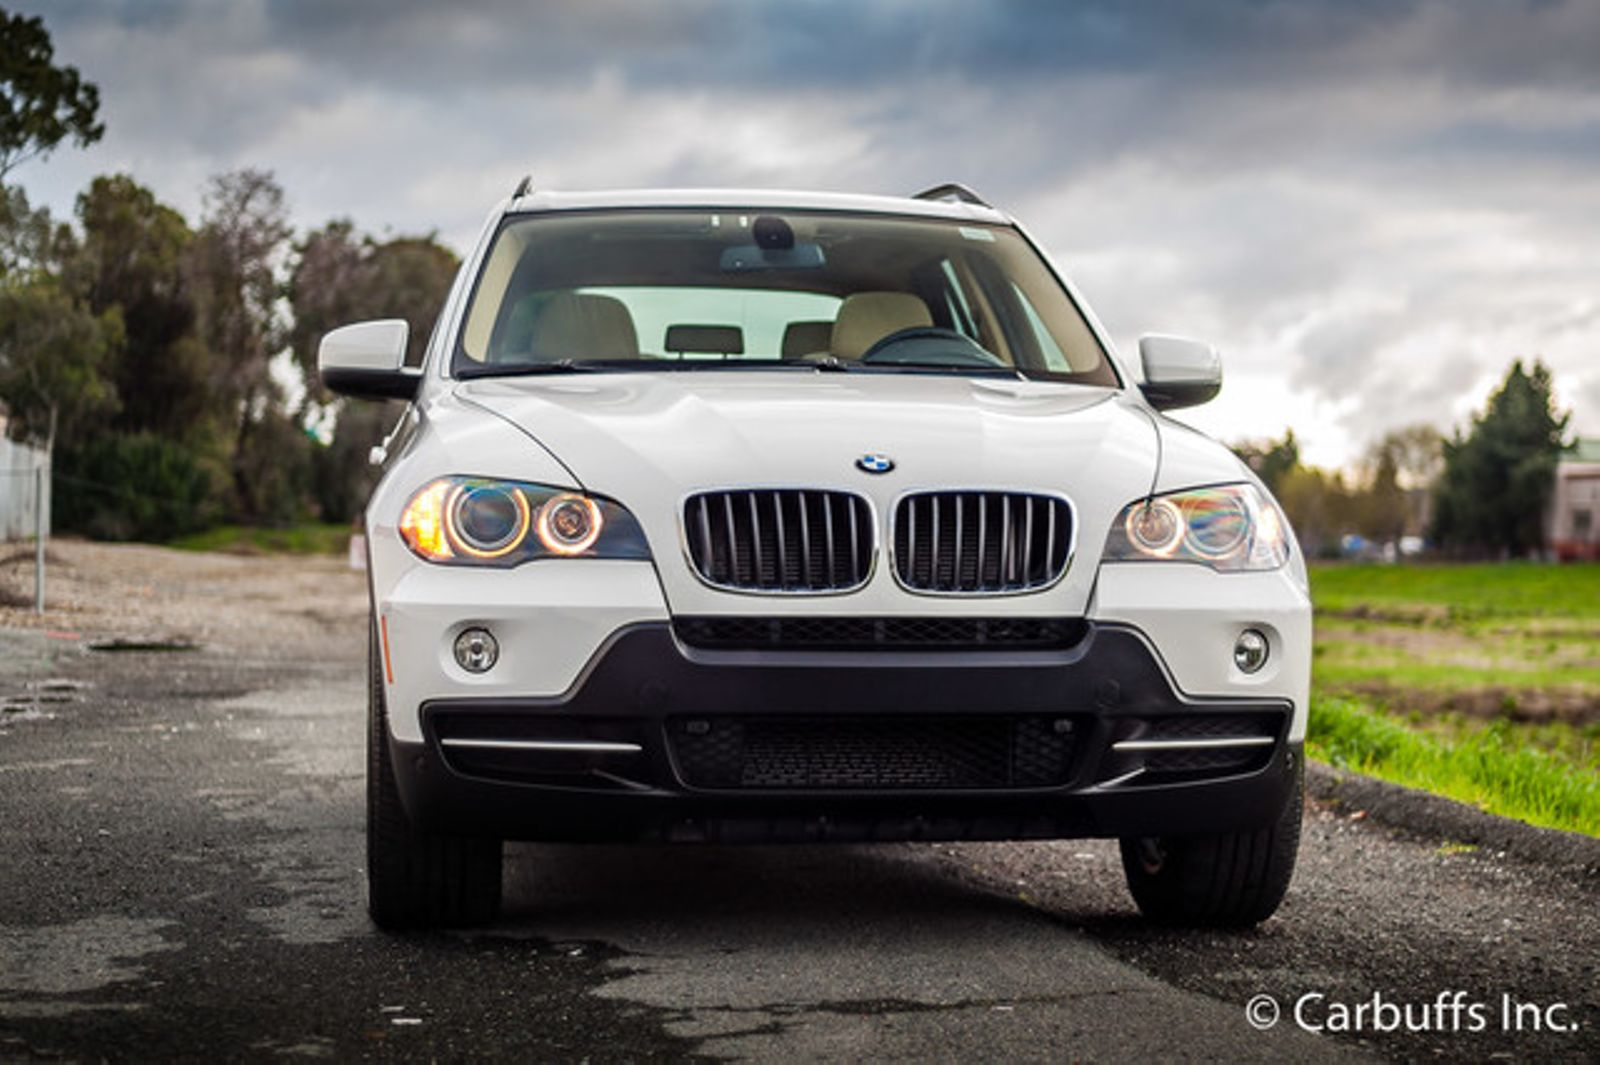 2009 bmw x5 xdrive30i 30i concord ca carbuffs concord ca 94520. Black Bedroom Furniture Sets. Home Design Ideas